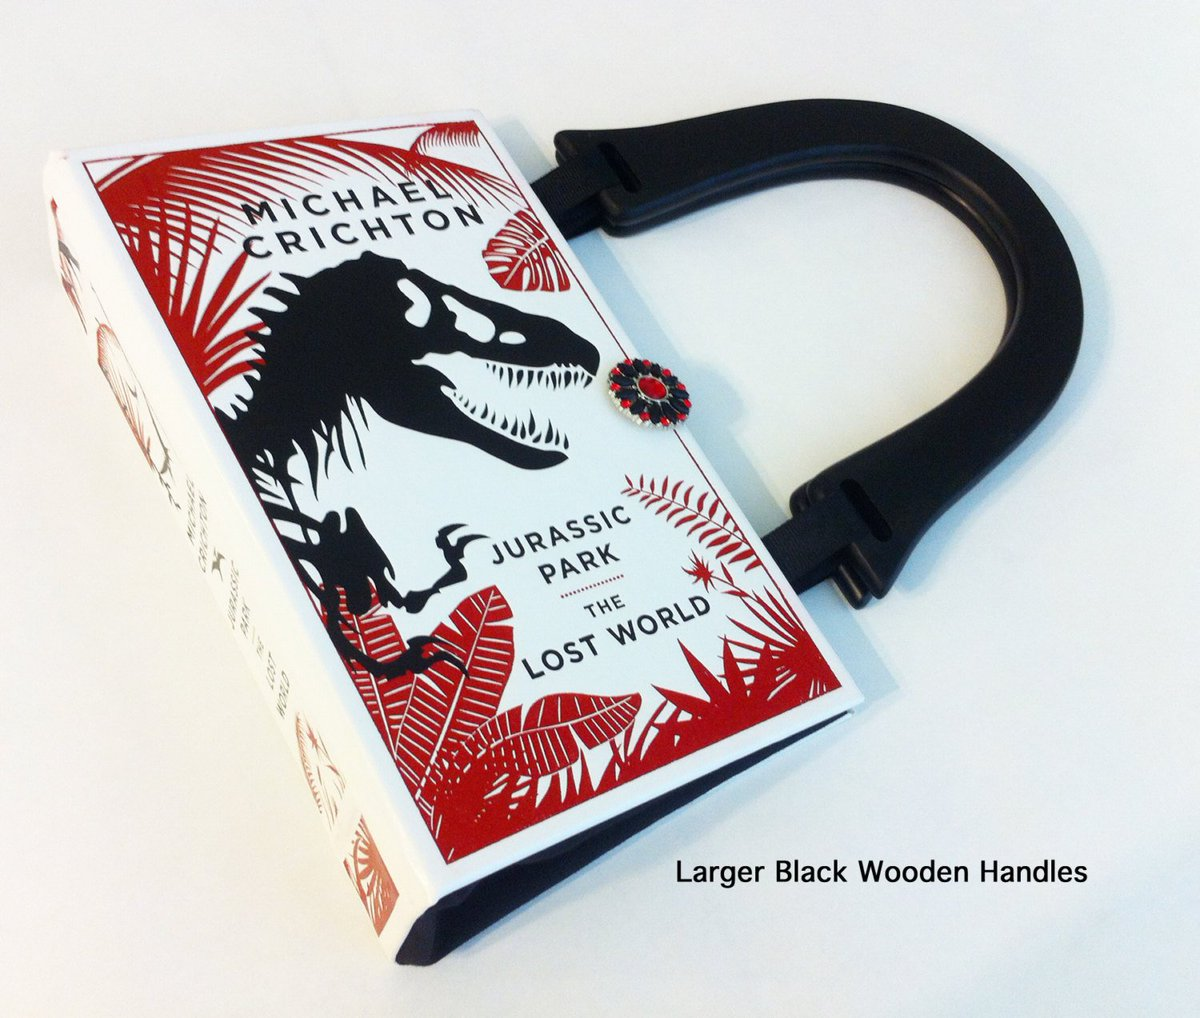 Jurassic Park Recycled Book Purse - The Lost World Book Cover Shoulder Pu…  http:// tuppu.net/1e23d948  &nbsp;   #EpiconEtsy #Trex<br>http://pic.twitter.com/kRuY80KLDB